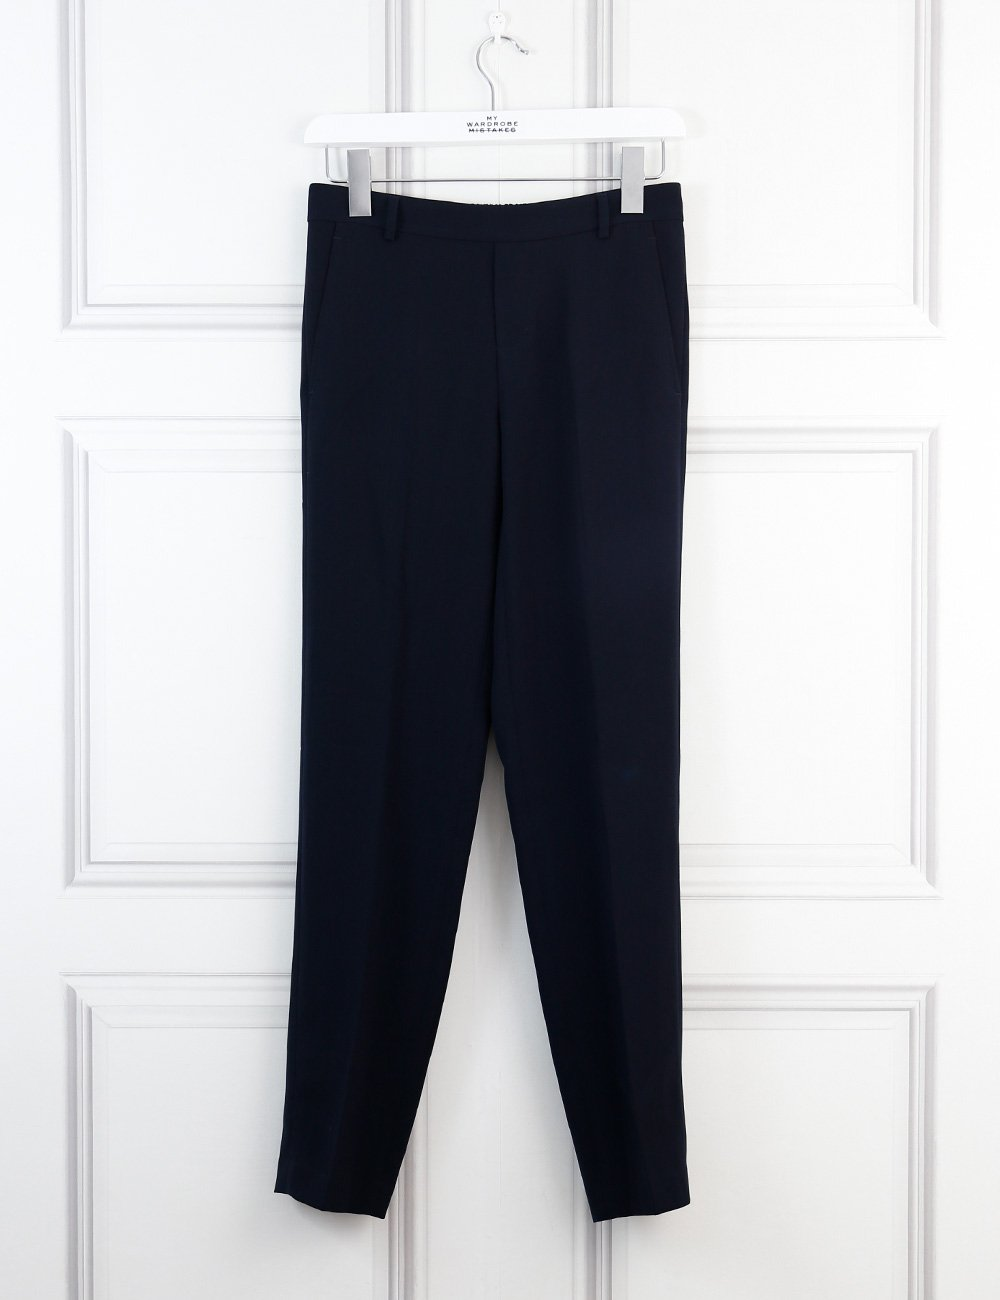 Vince blue elastic tailored trousers 6Uk